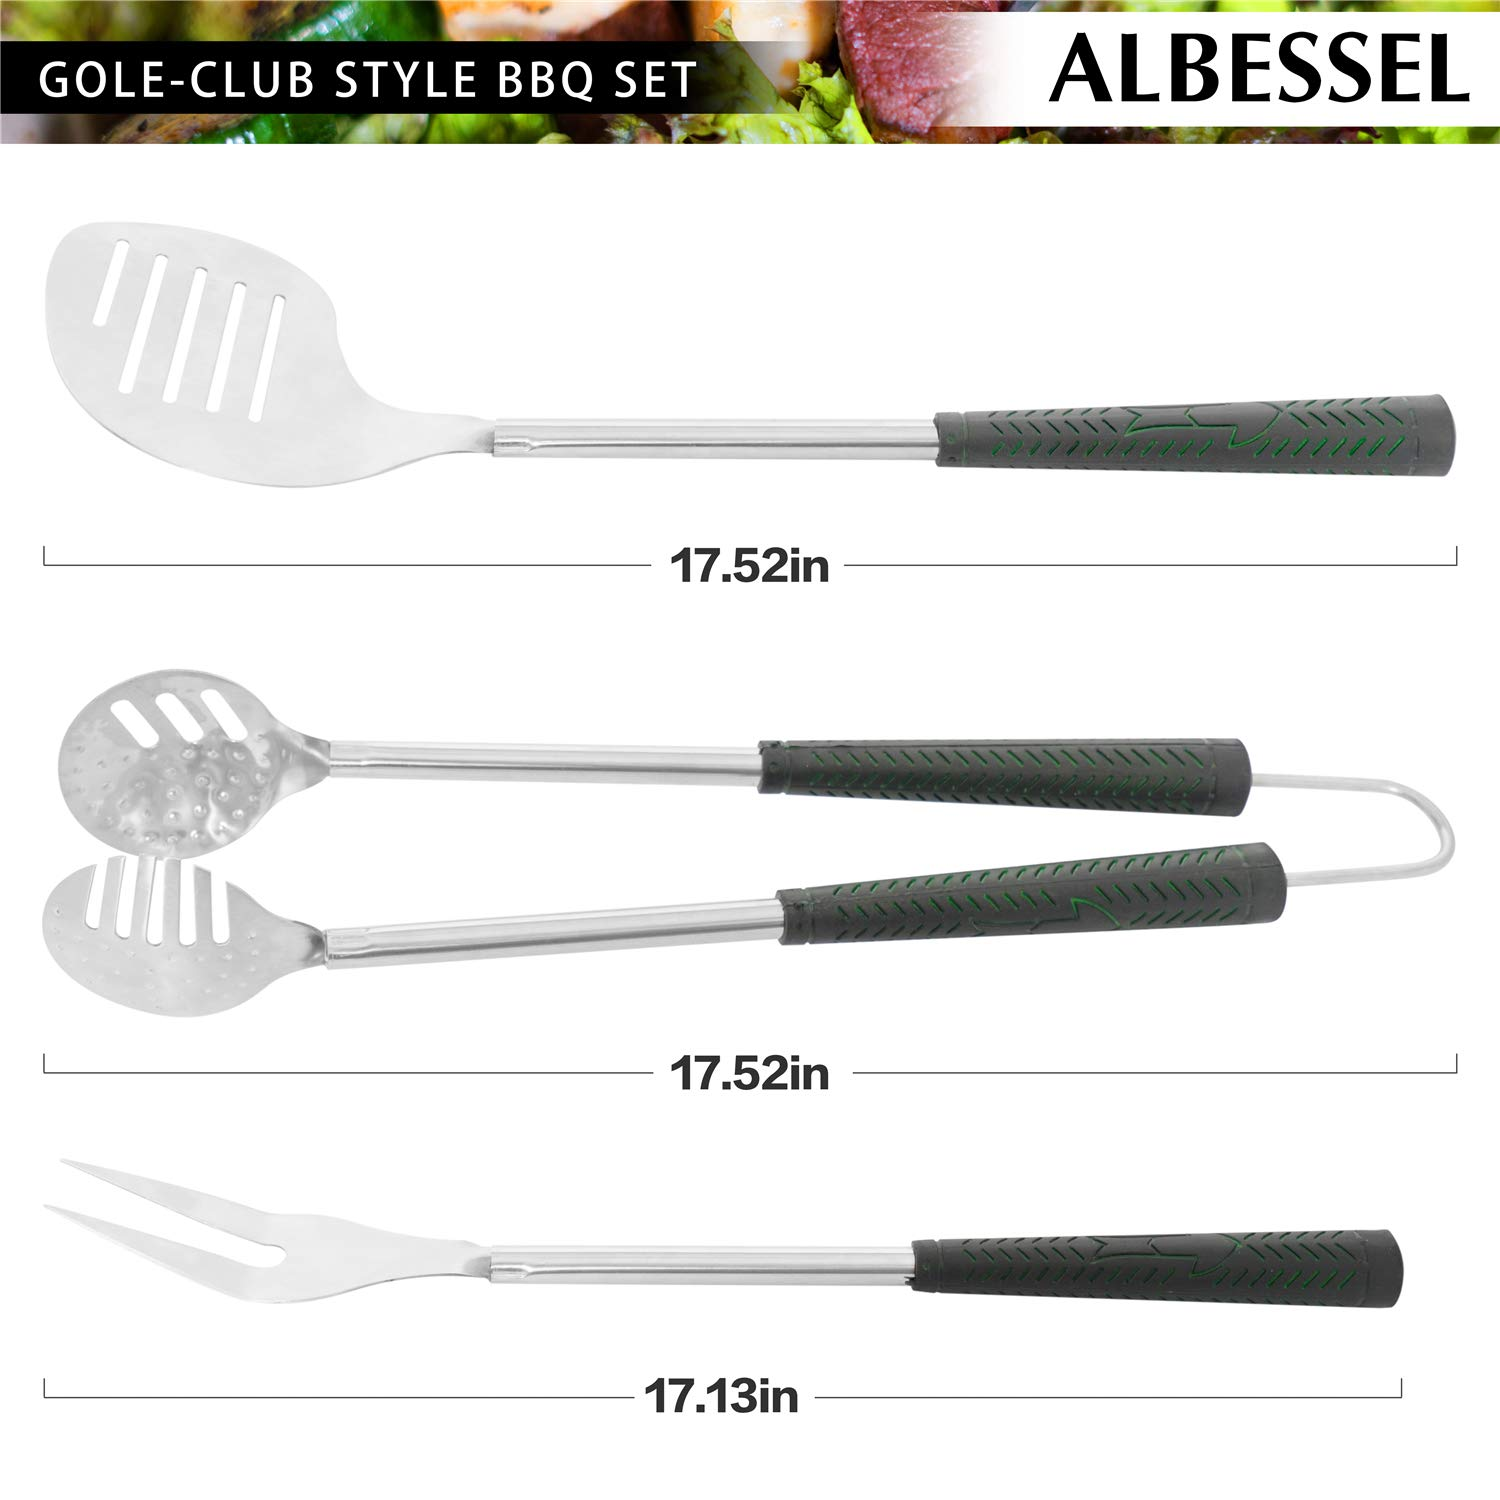 Albessel 6 Pieces Golf-Club Style BBQ Grill Tools Set with Golf-Club Style Bag – Stainless Steel Barbecue Accessories Utensils Kit with Heatproof Grips, for Outdoor, Camping, Party